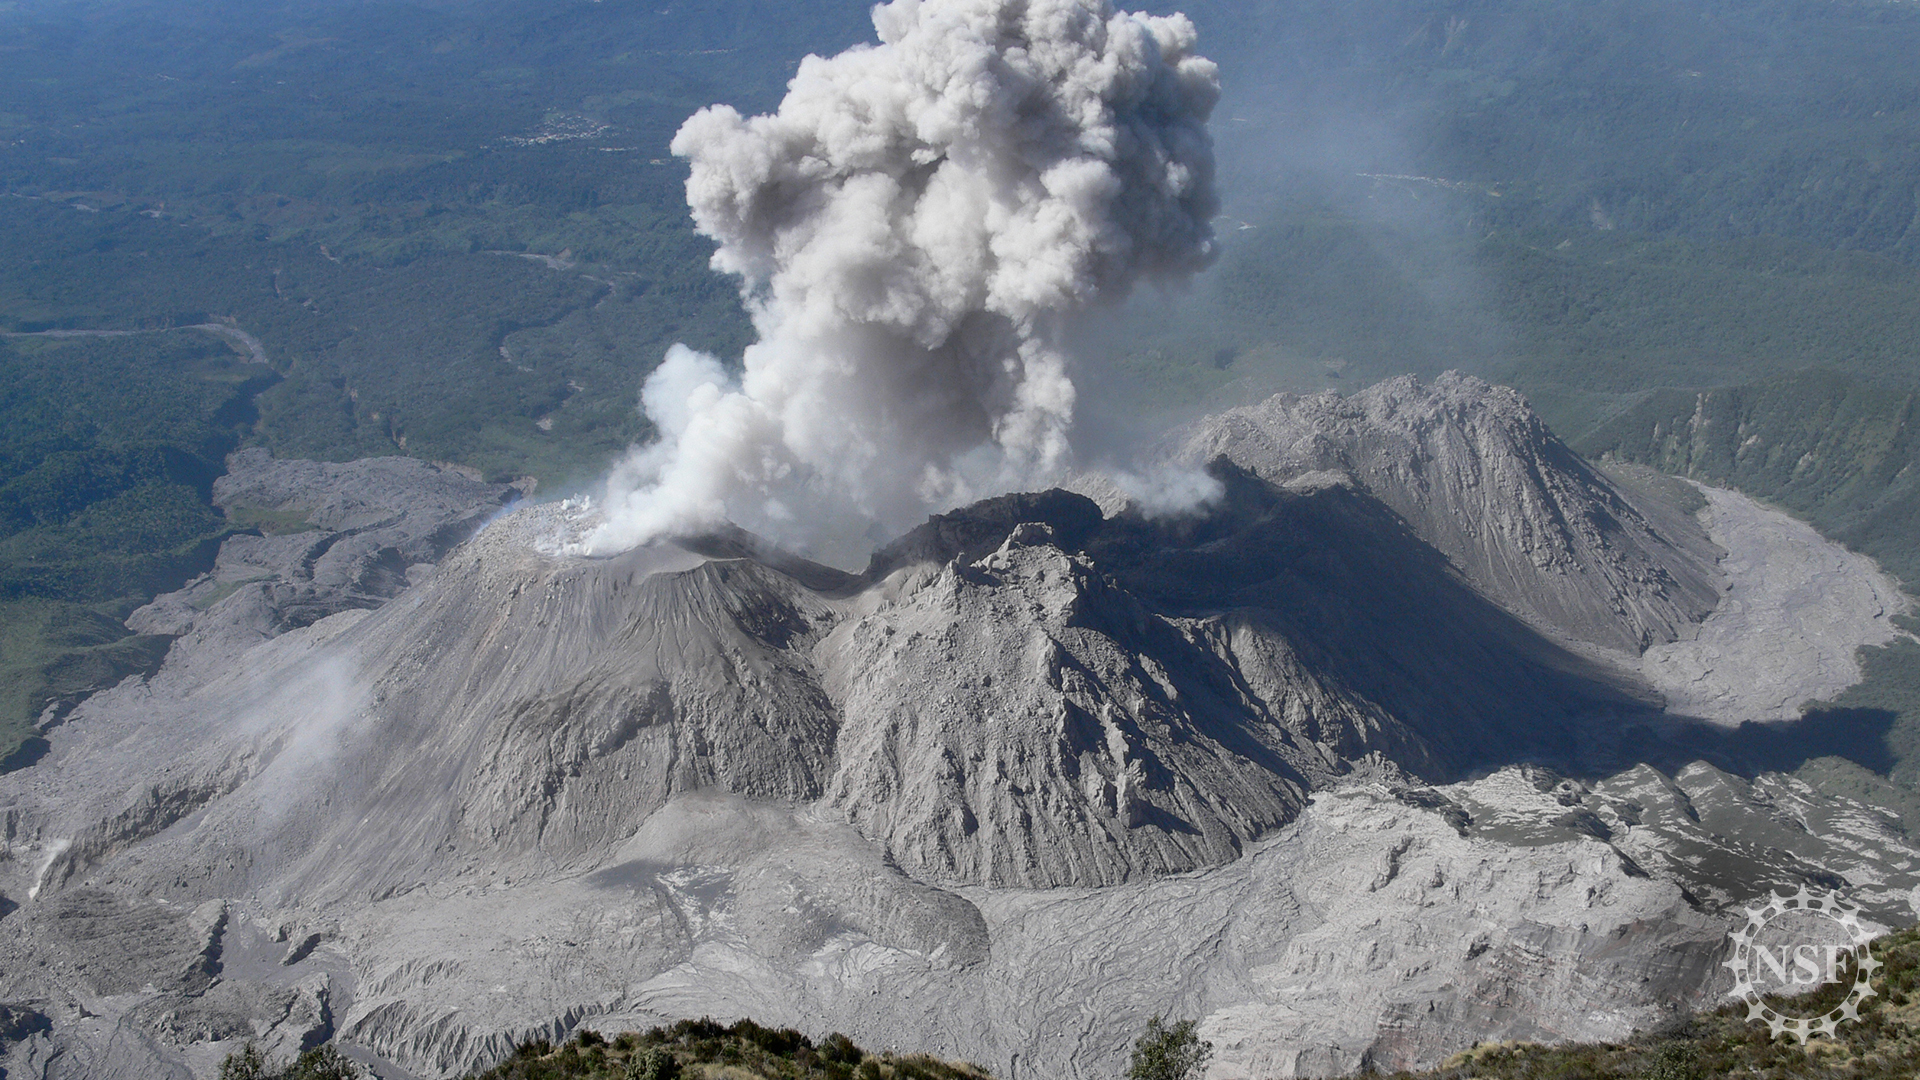 the volcano Caliente lava dome erupts